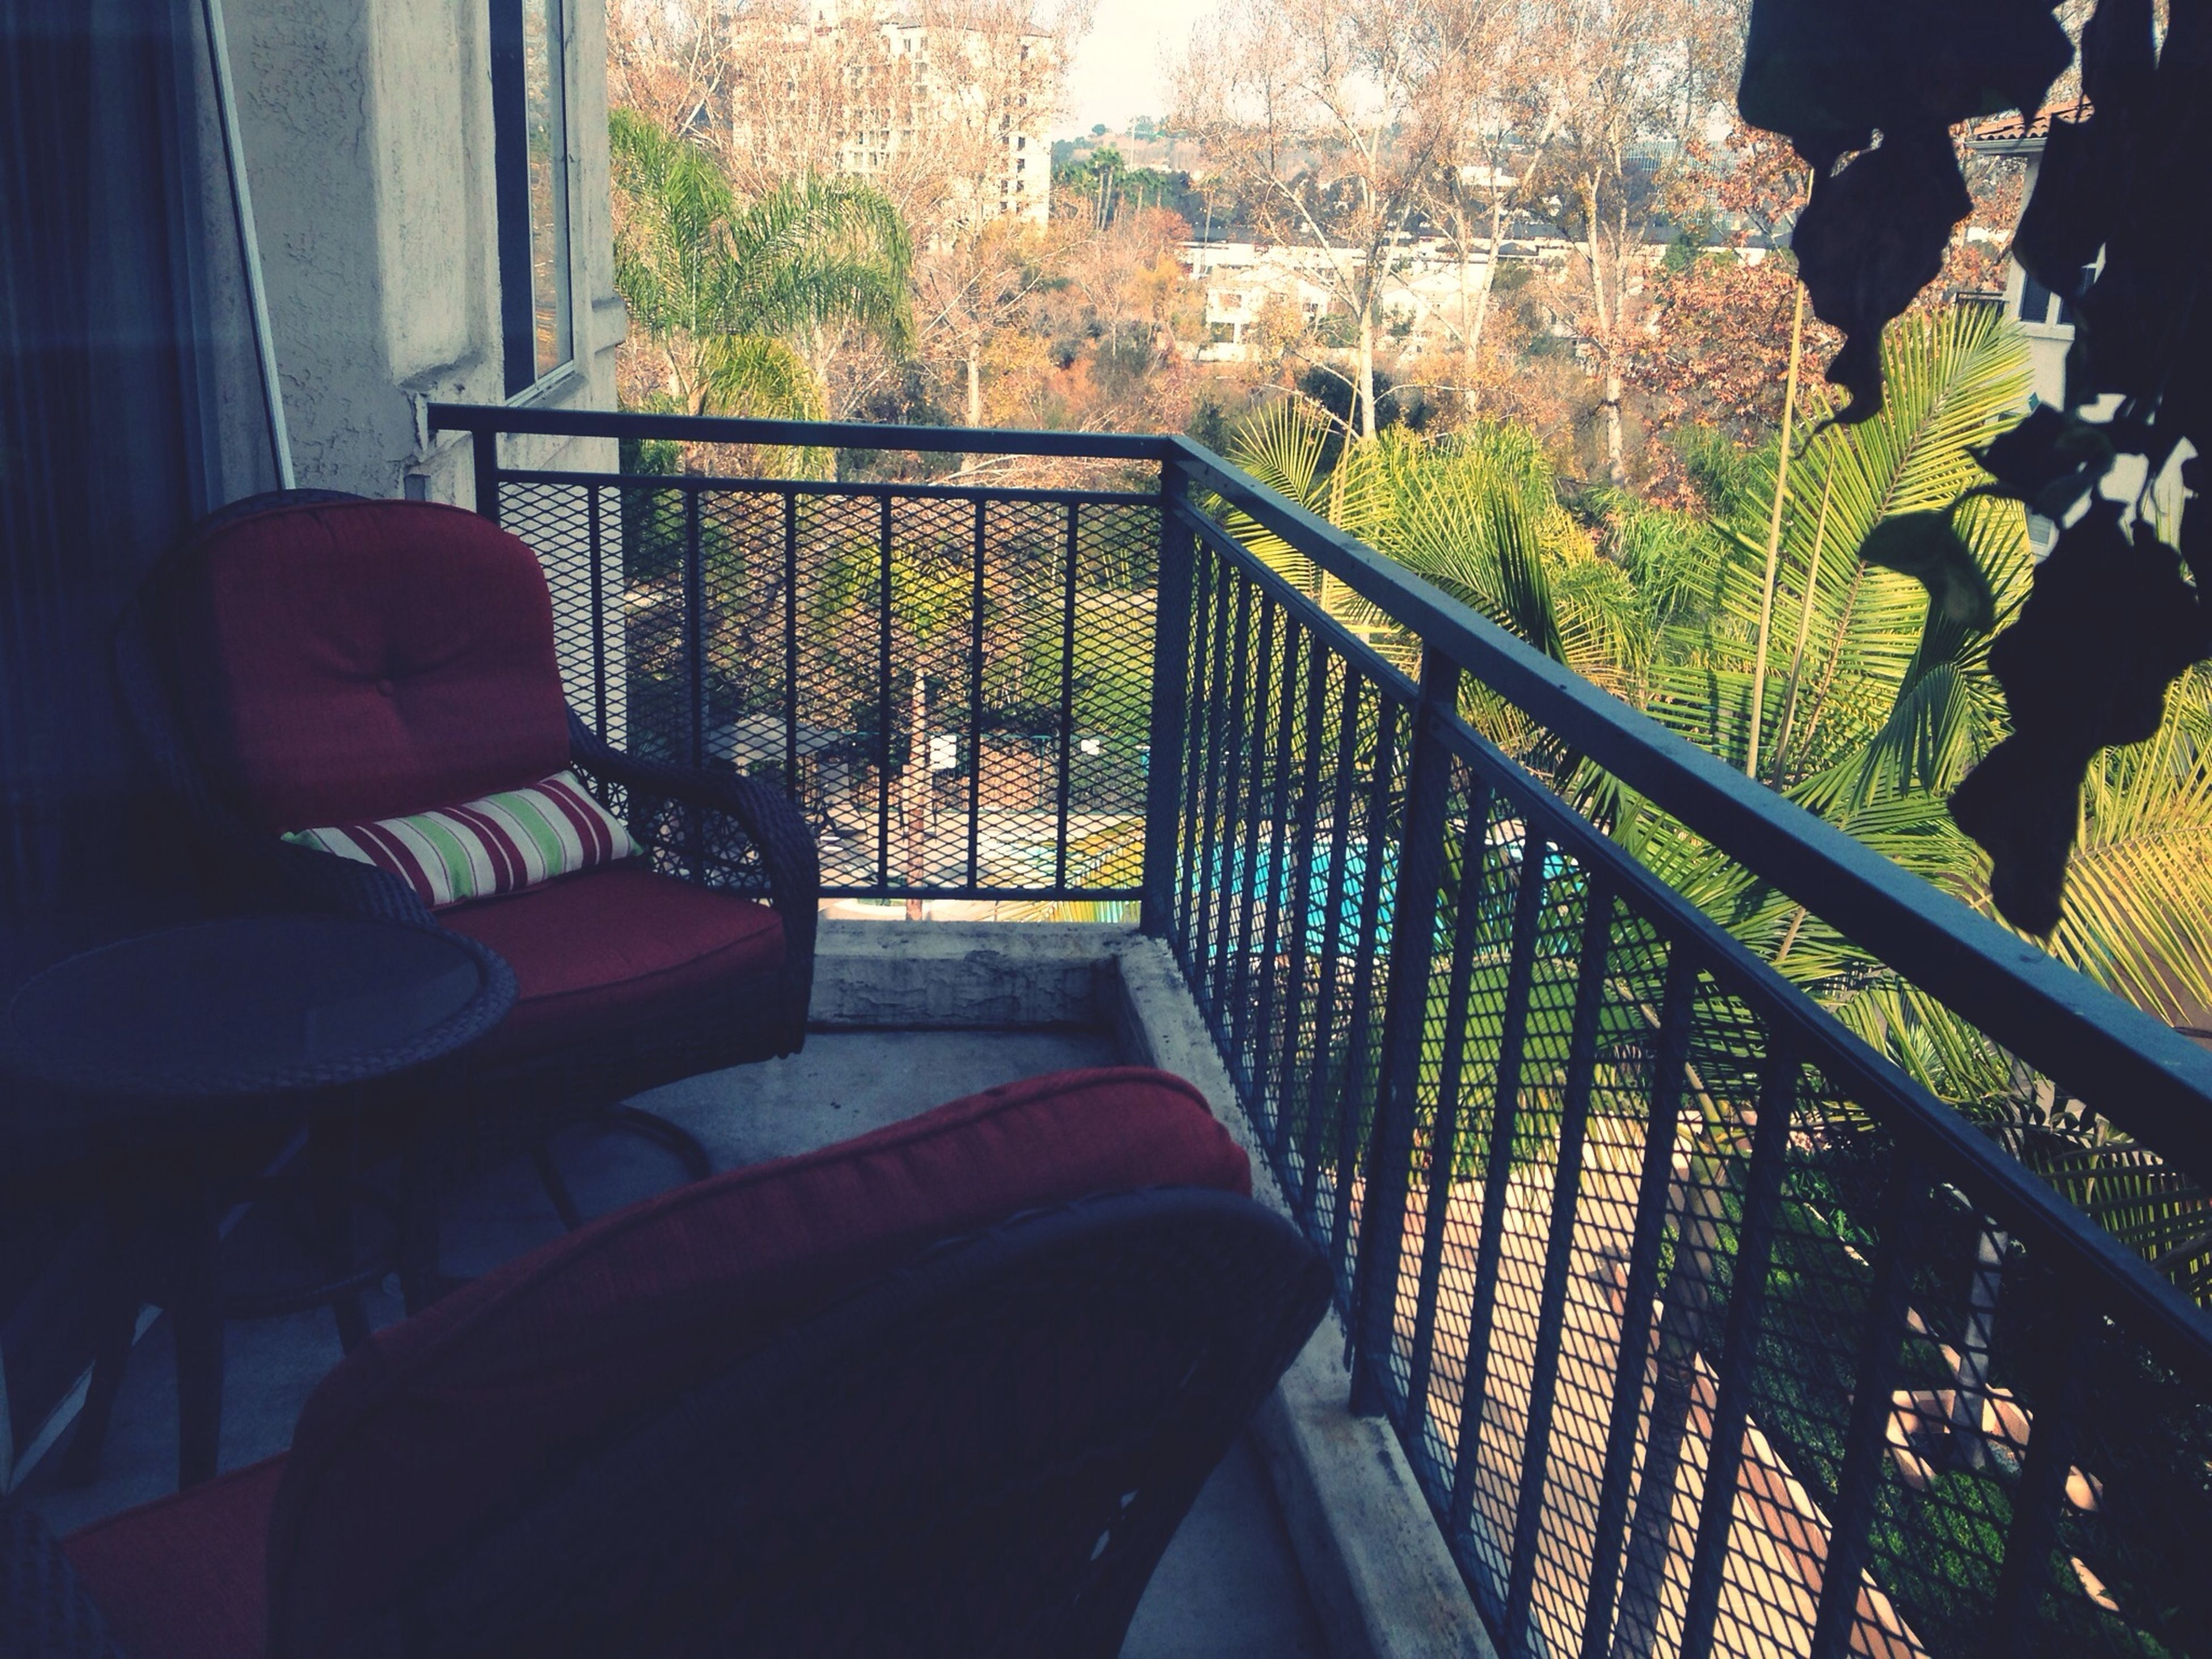 window, indoors, built structure, architecture, potted plant, railing, house, plant, balcony, glass - material, chair, sunlight, tree, day, growth, building exterior, absence, steps, no people, steps and staircases